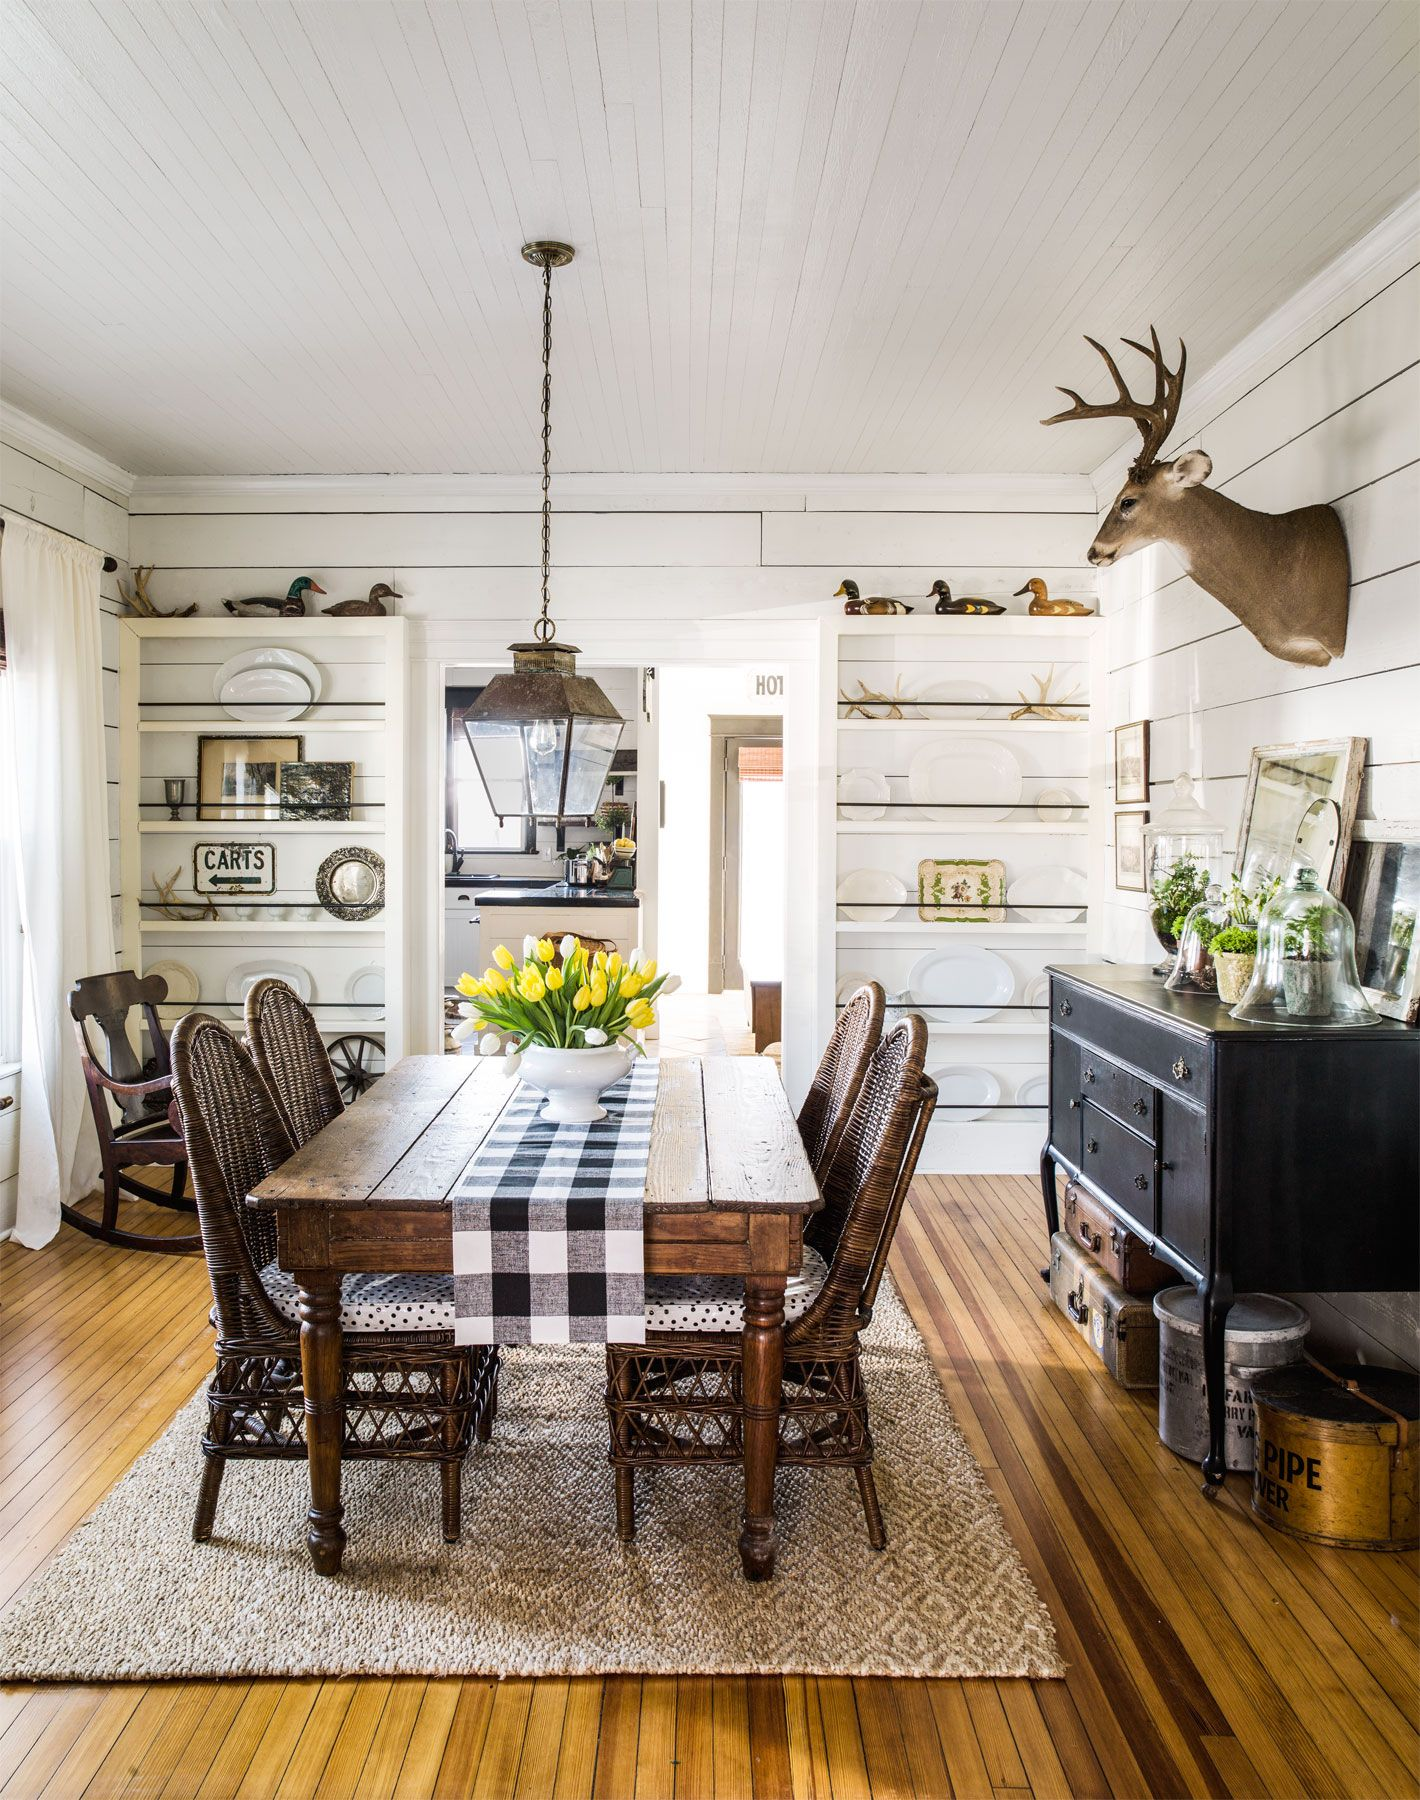 Old Living Room Ideas House Of Turquoise 18 Vintage Decorating From A 1934 Farmhouse Dining Rooms This 100 Year Antique Farm Table Is An Ideal Fit For The Pass Through